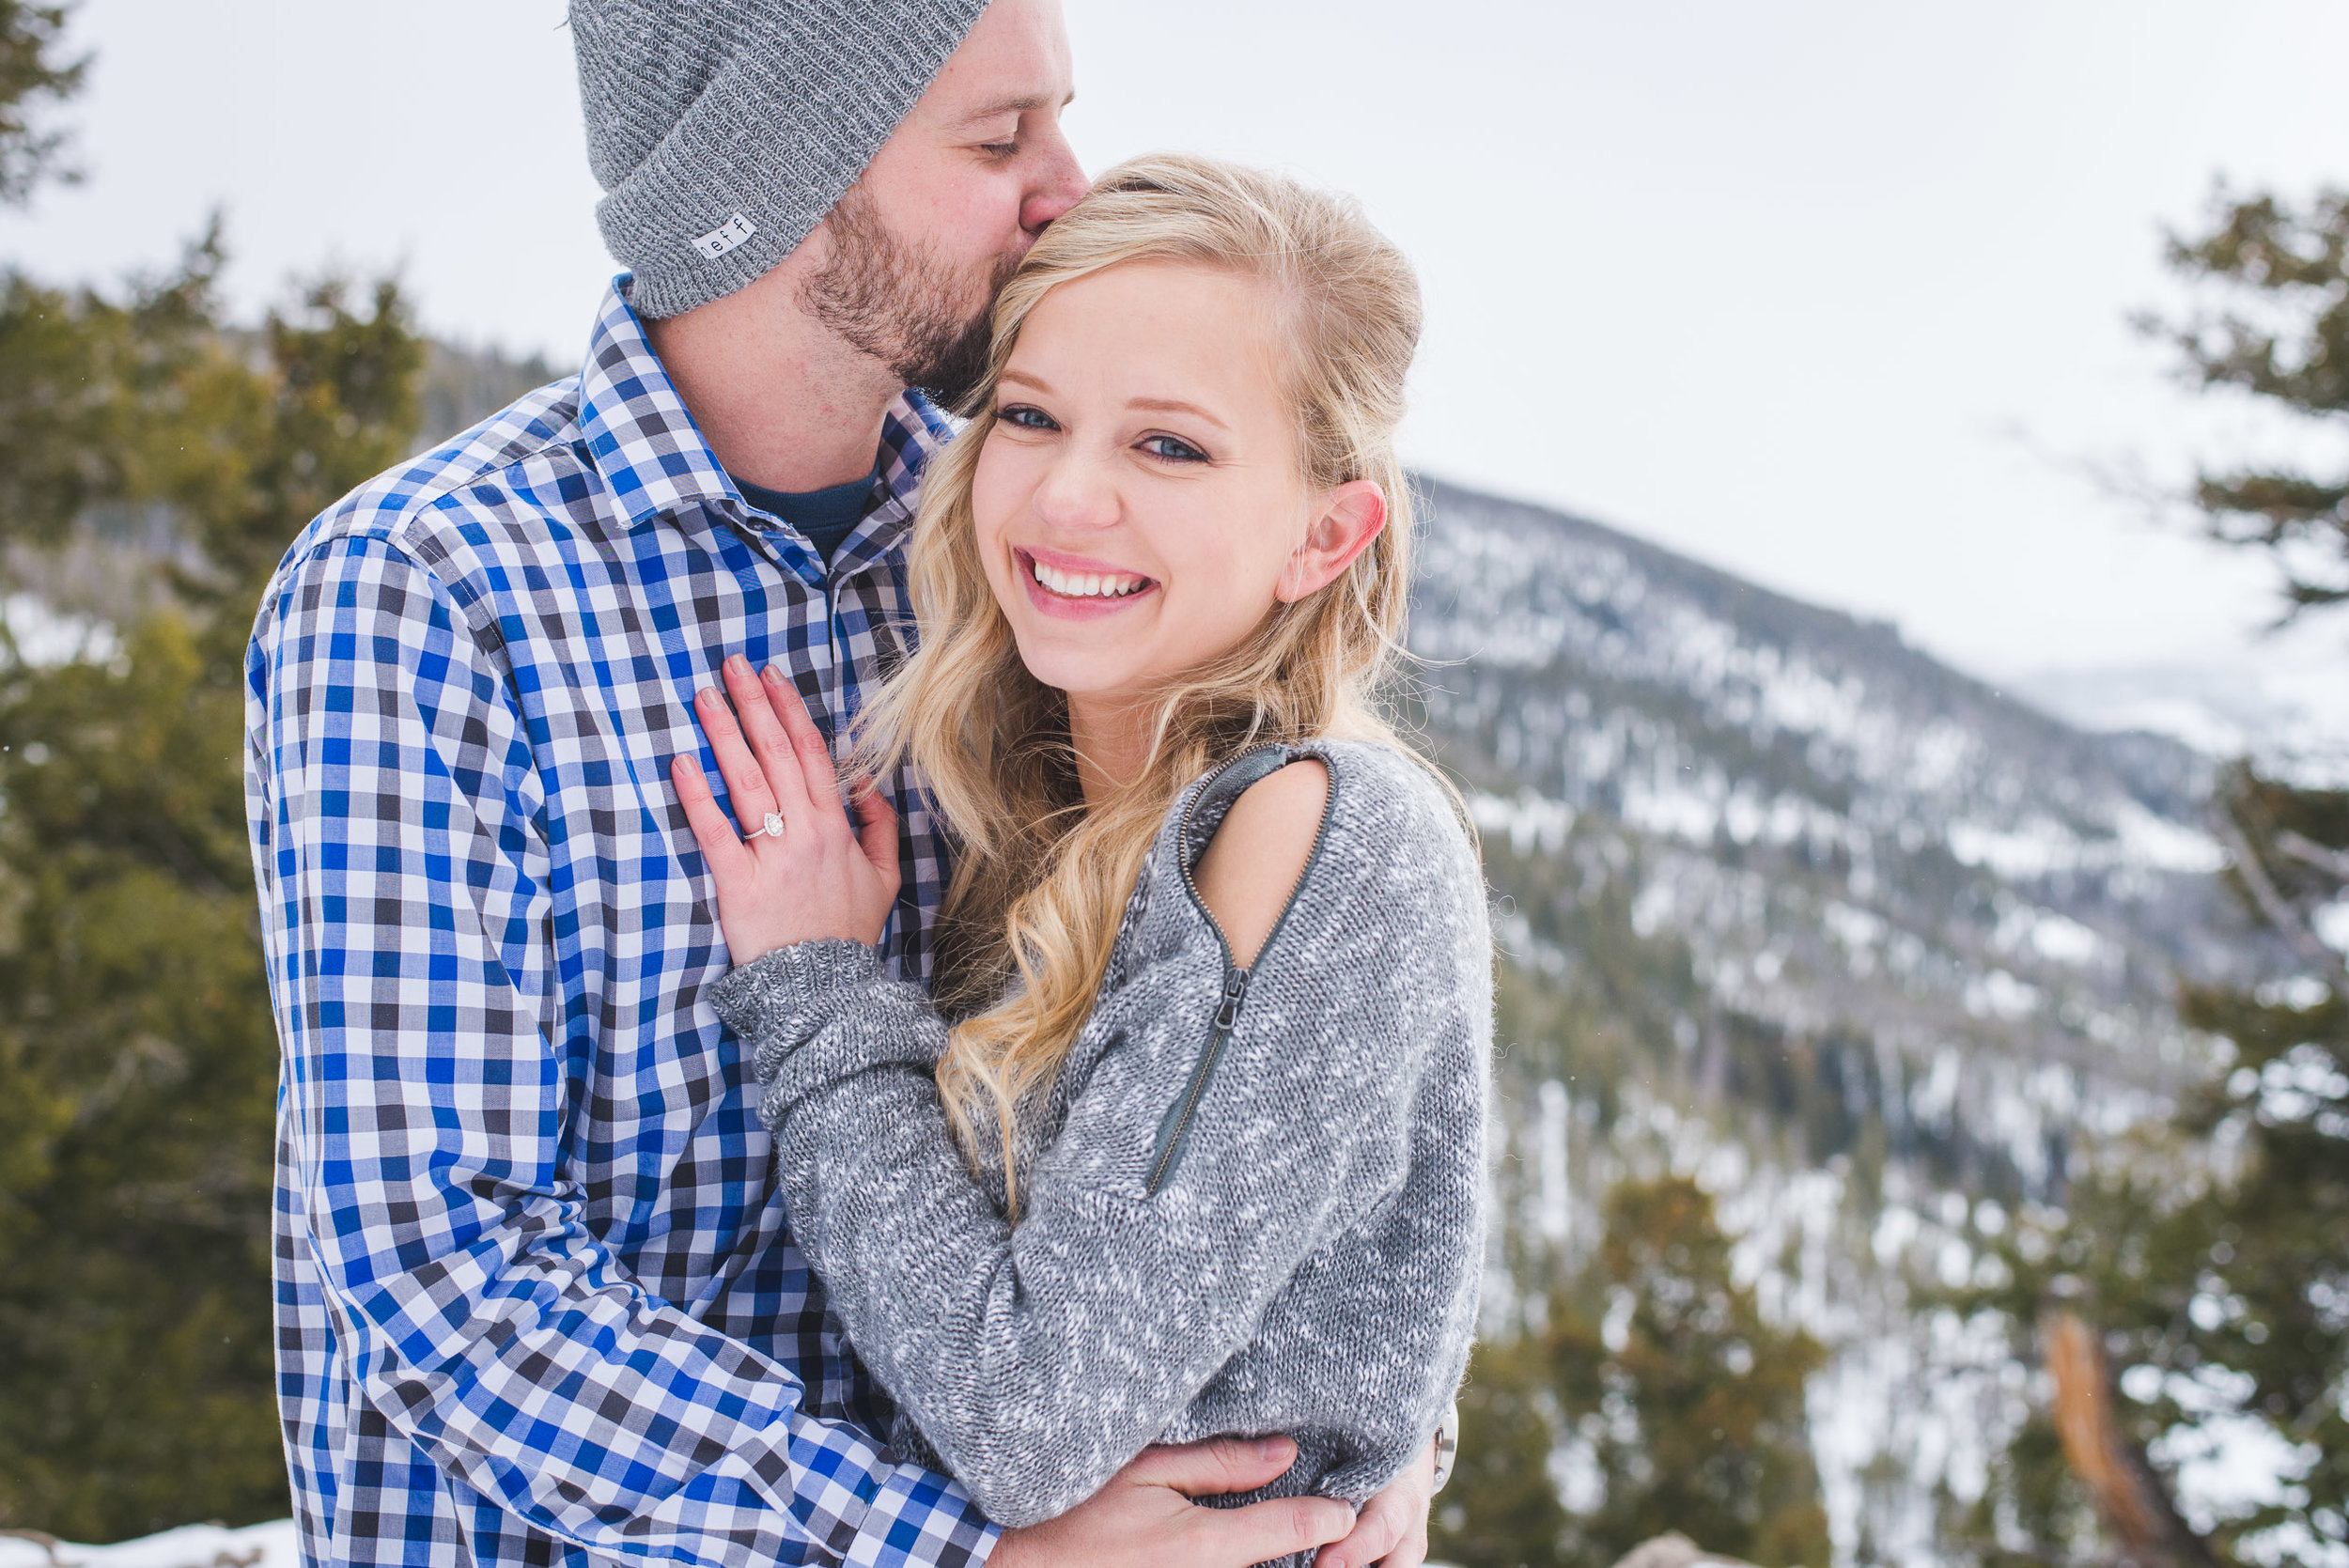 Family portraits and a proposal shoot in the Colorado mountains | Hair + Makeup for portrait sessions | Keeping Composure Photography